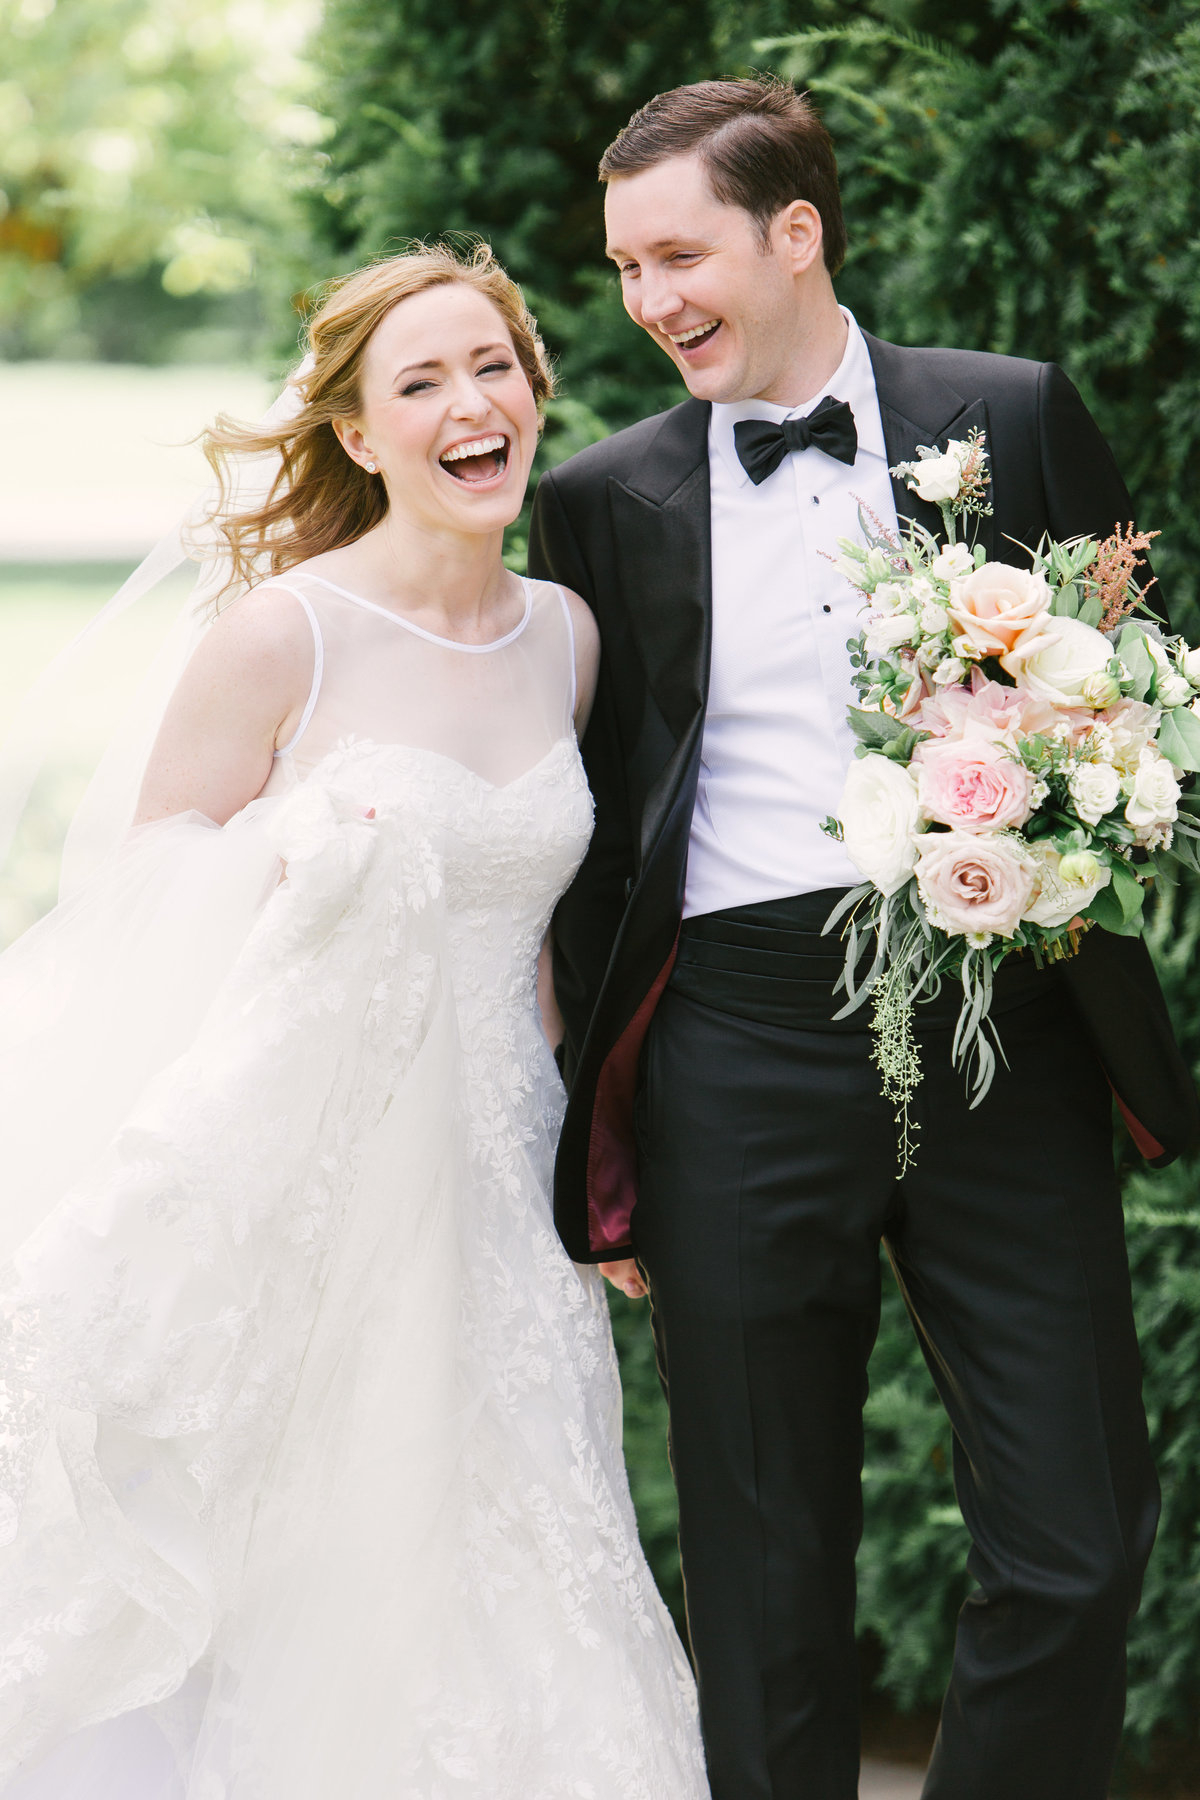 Scottish Rite Cathedral Wedding  Bride and Groom Laughing Photo